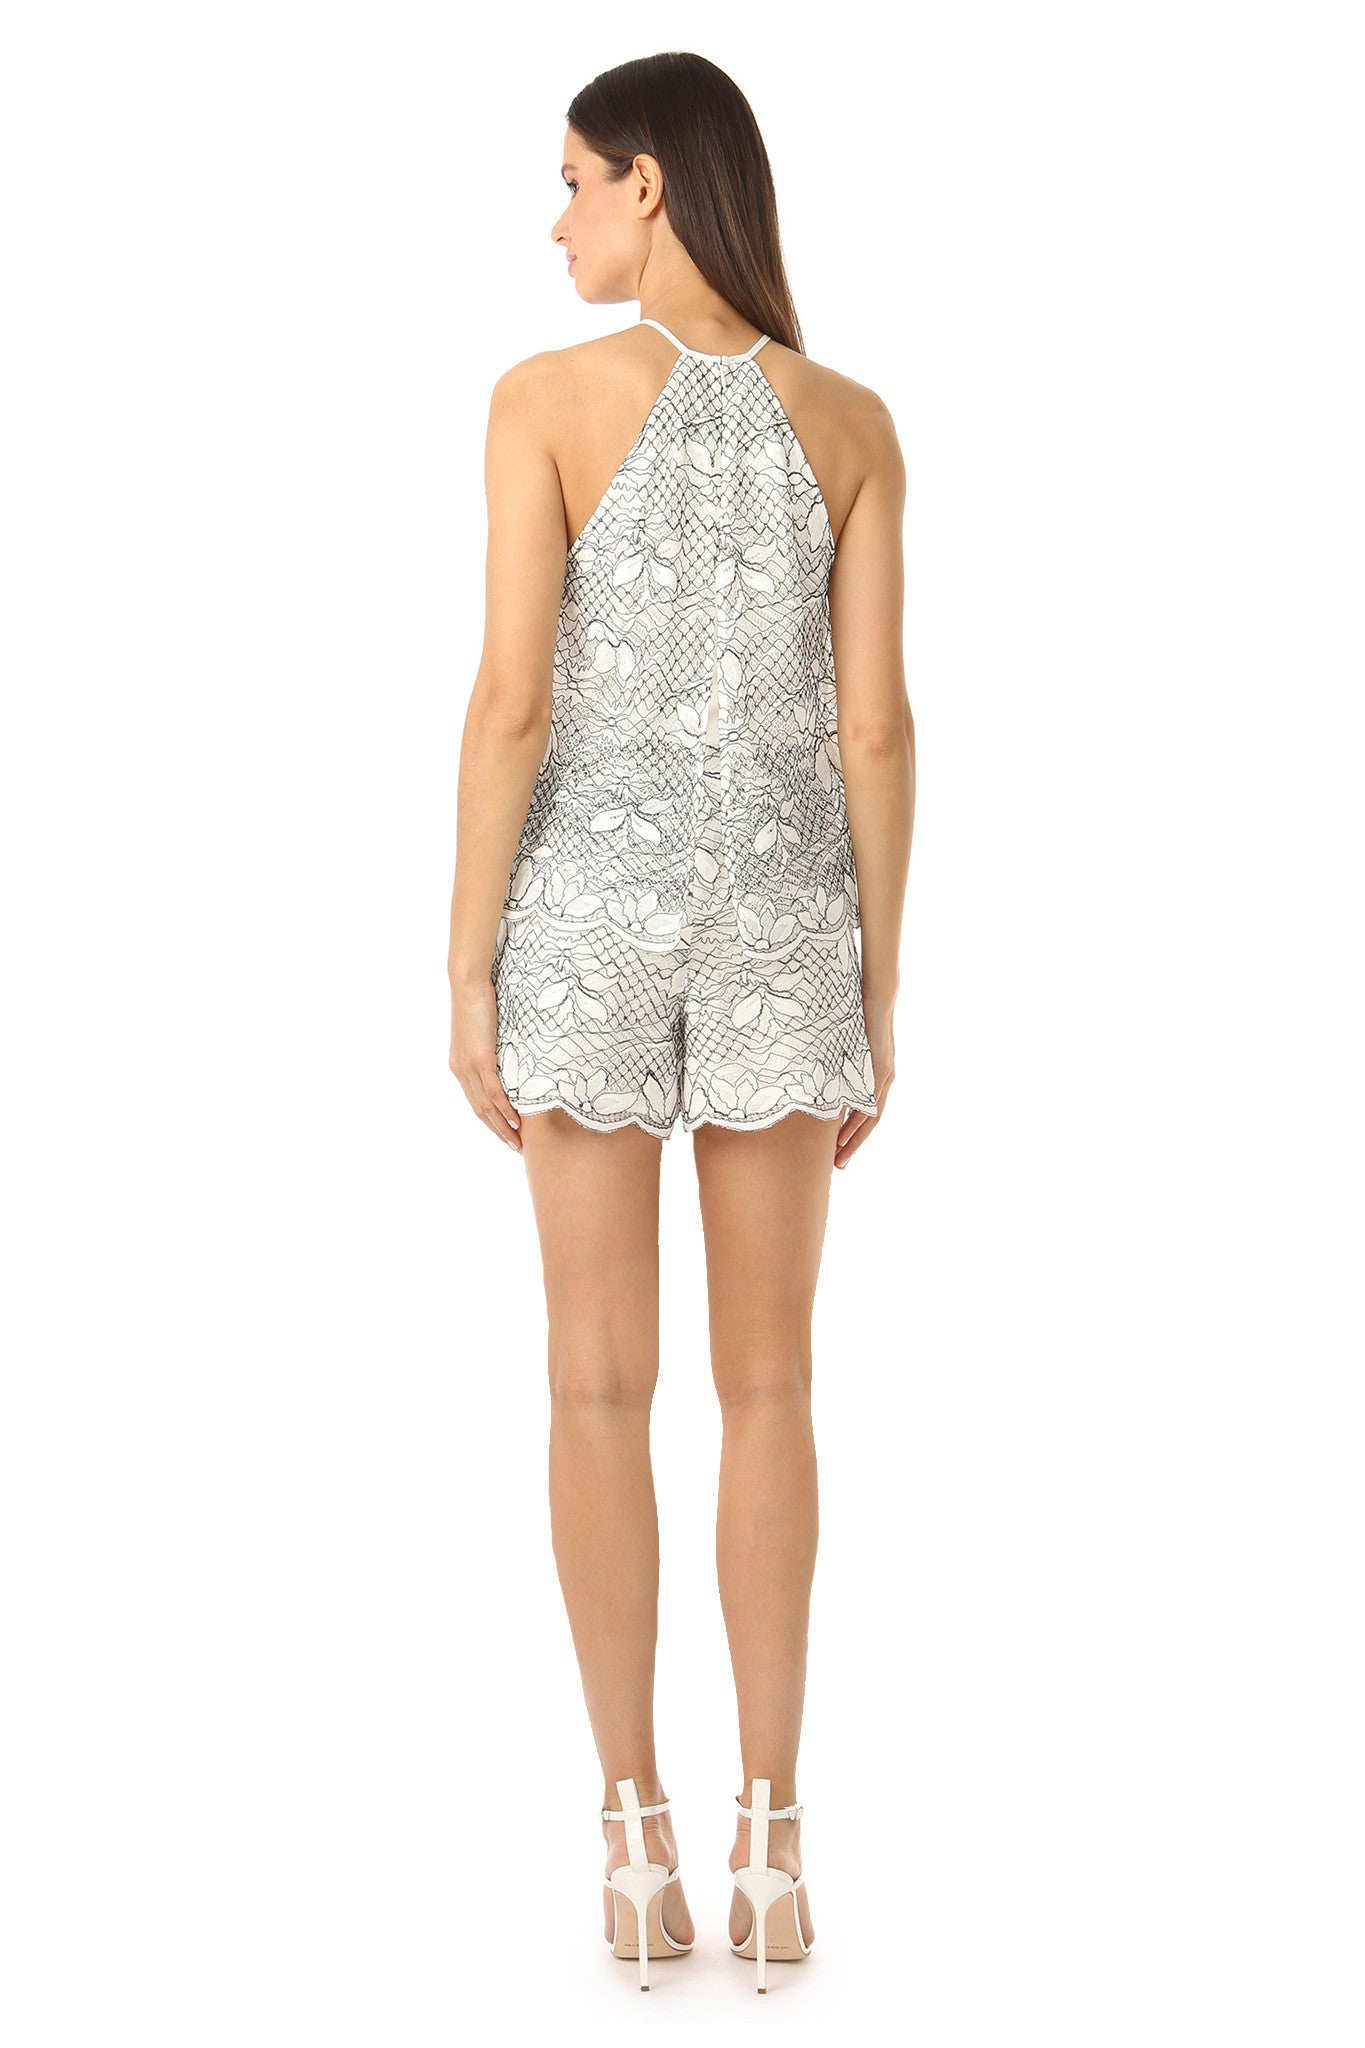 Jay Godfrey High Neck White Lace Romper - Back View